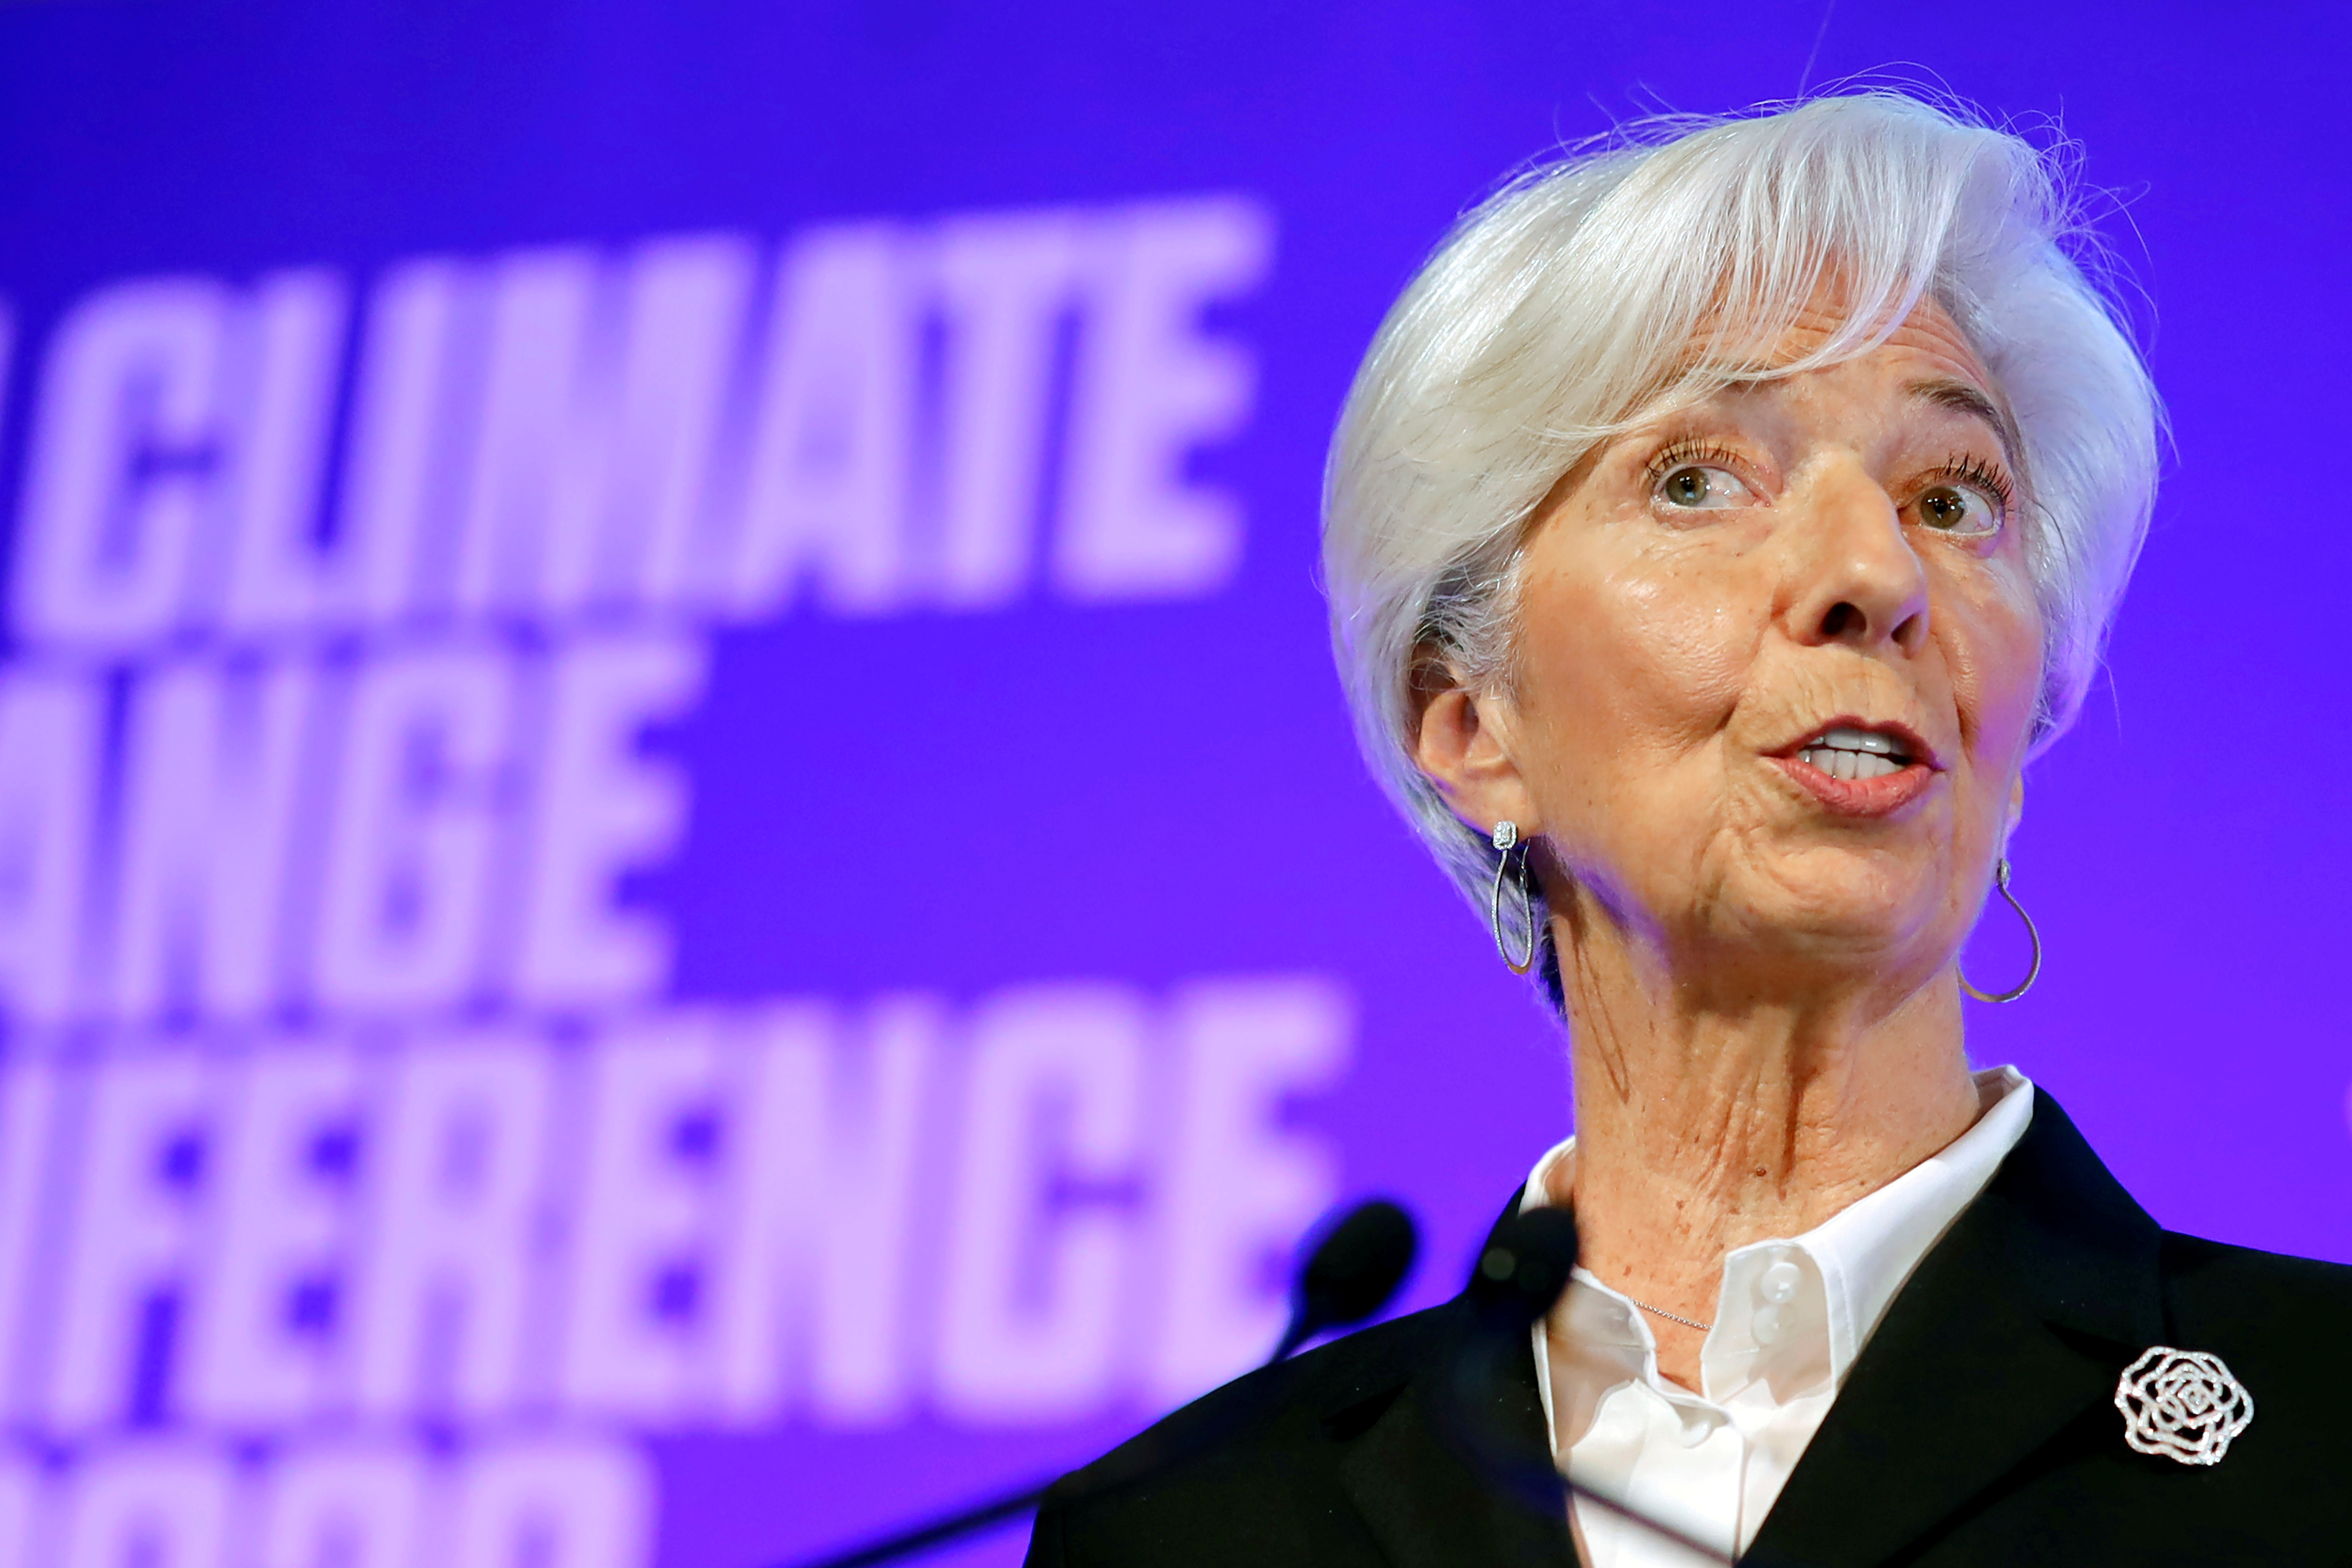 European Central Bank (ECB) President Christine Lagarde addresses an event to launch the private finance agenda for the 2020 United Nations Climate Change Conference (COP26) at Guildhall in London, Britain February 27, 2020.   Tolga Akmen/Pool via REUTERS